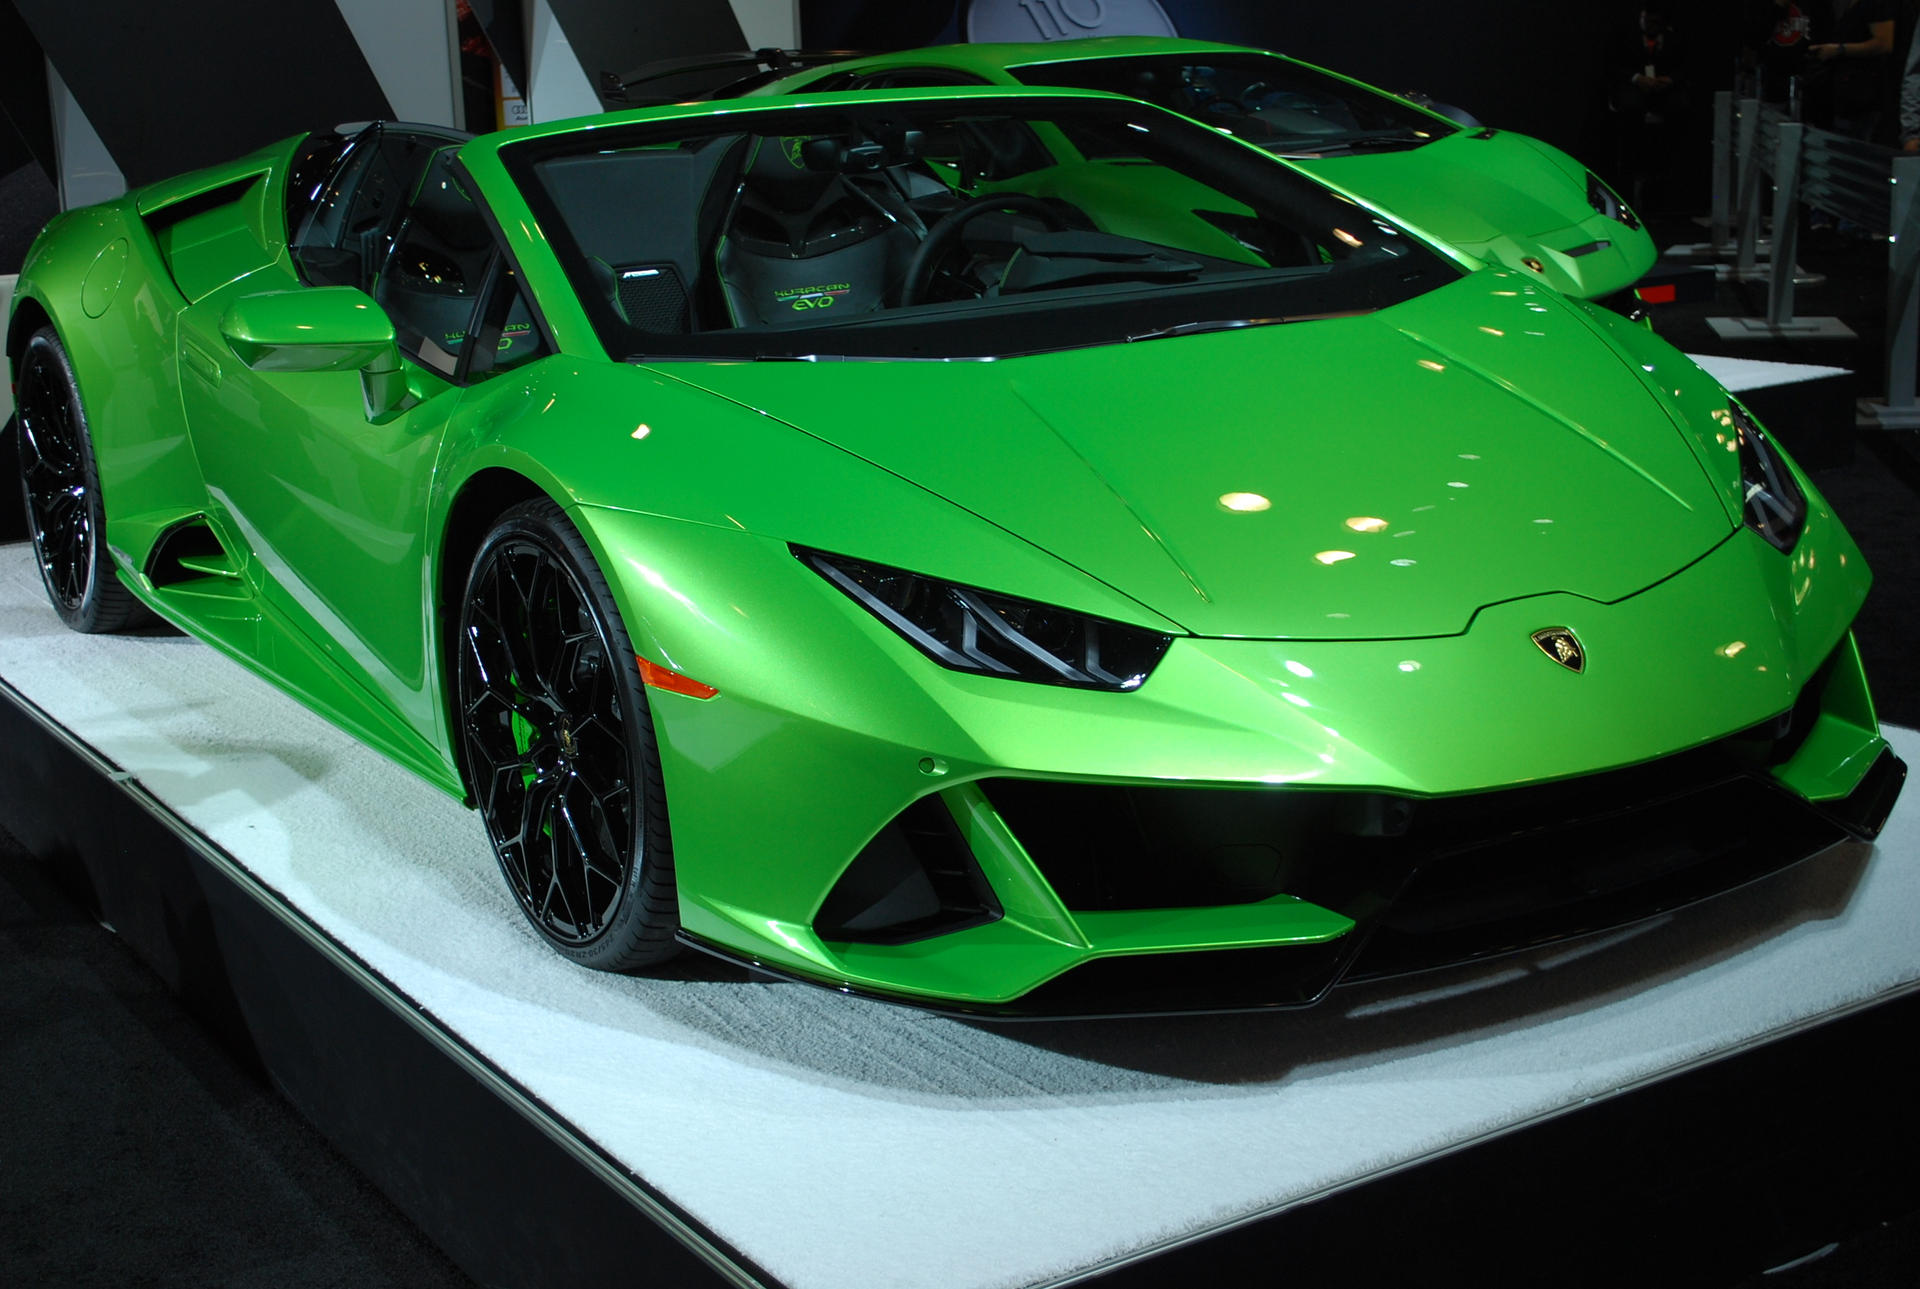 2020 Lamborghini Huracan Evo Spyder I By Hardrocker78 On